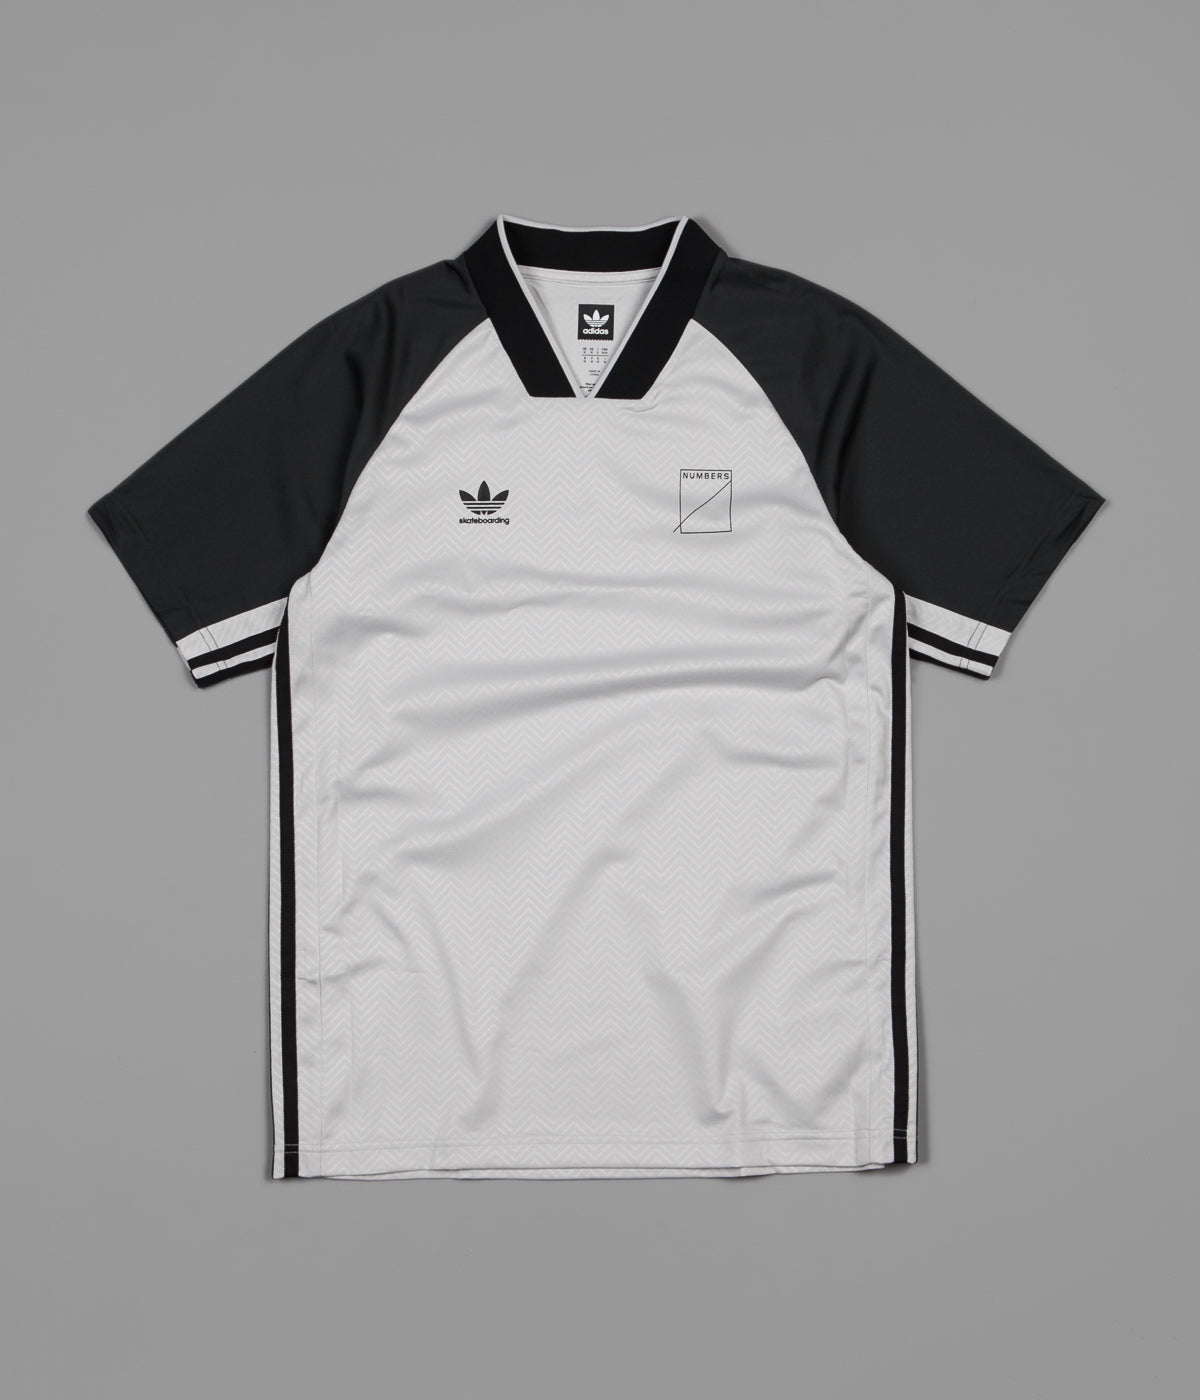 Adidas x Numbers Jersey - Black / Grey One / Carbon